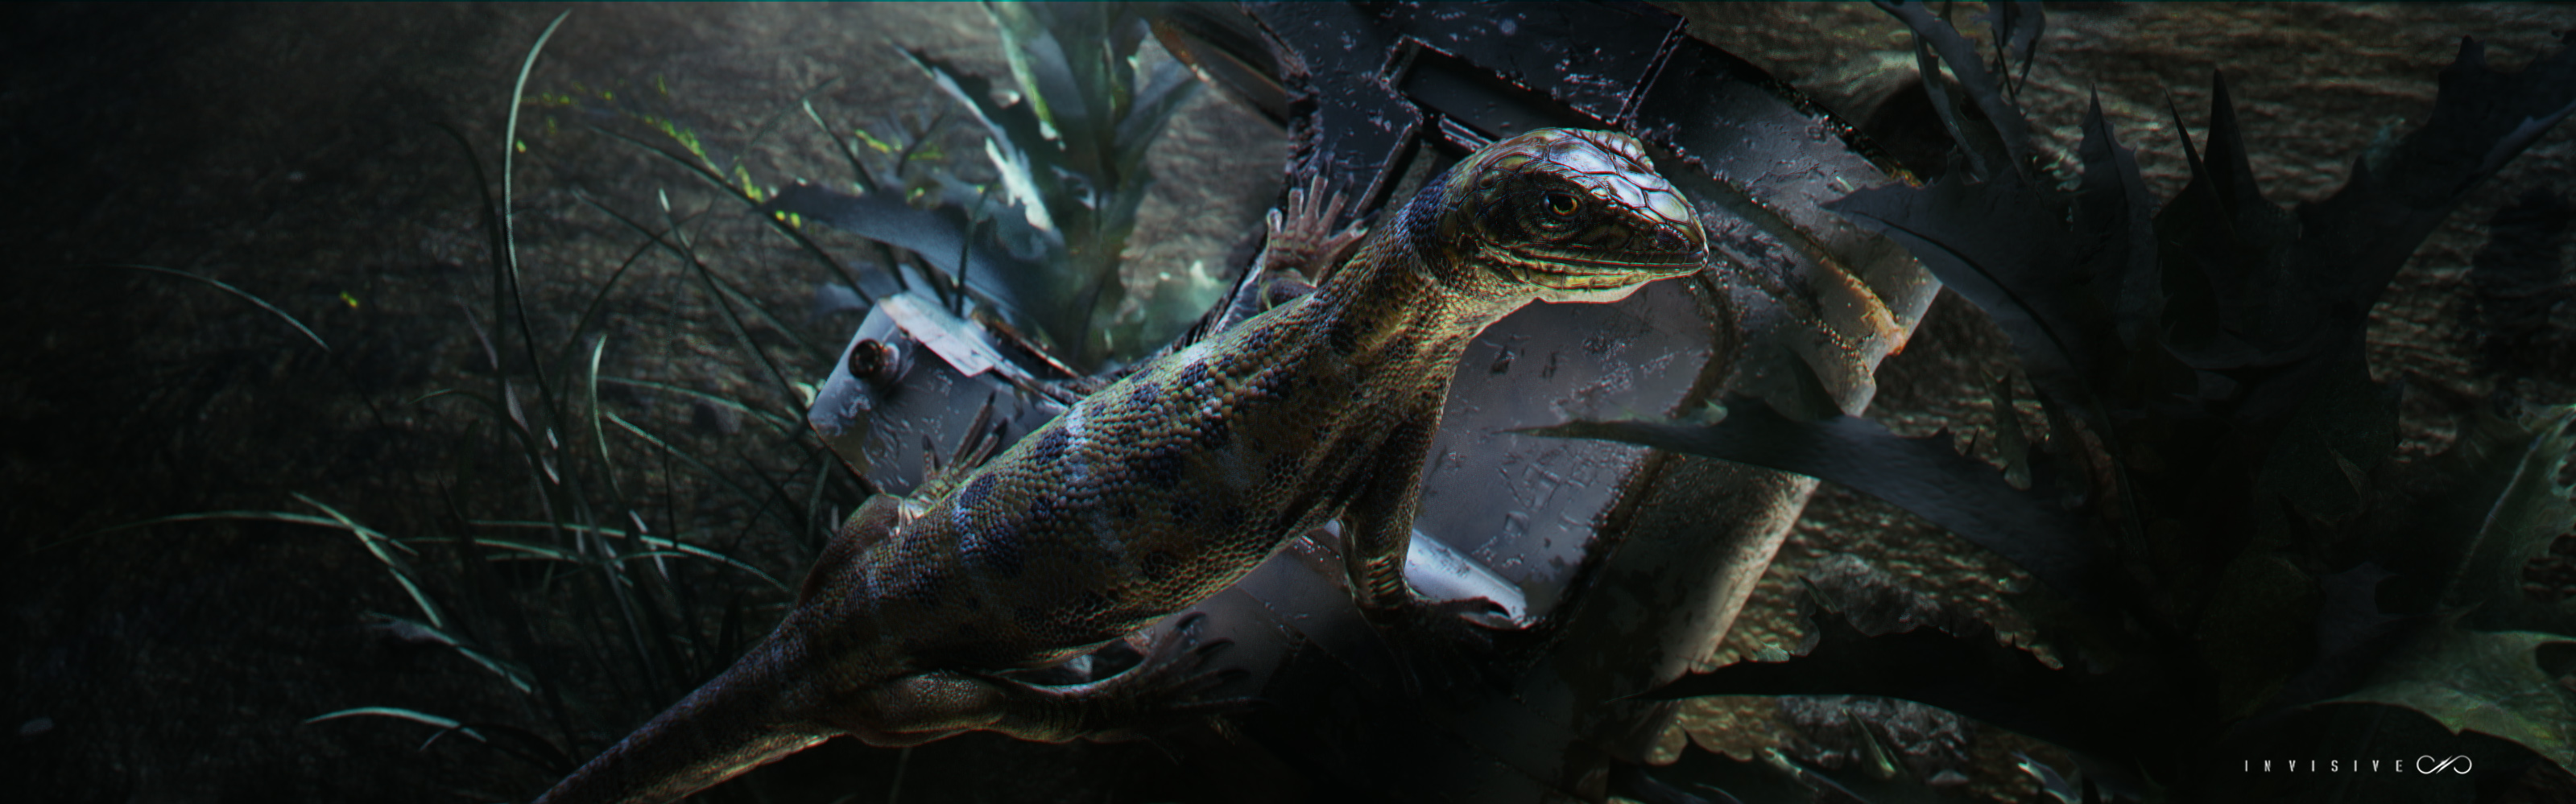 Test render of lizard